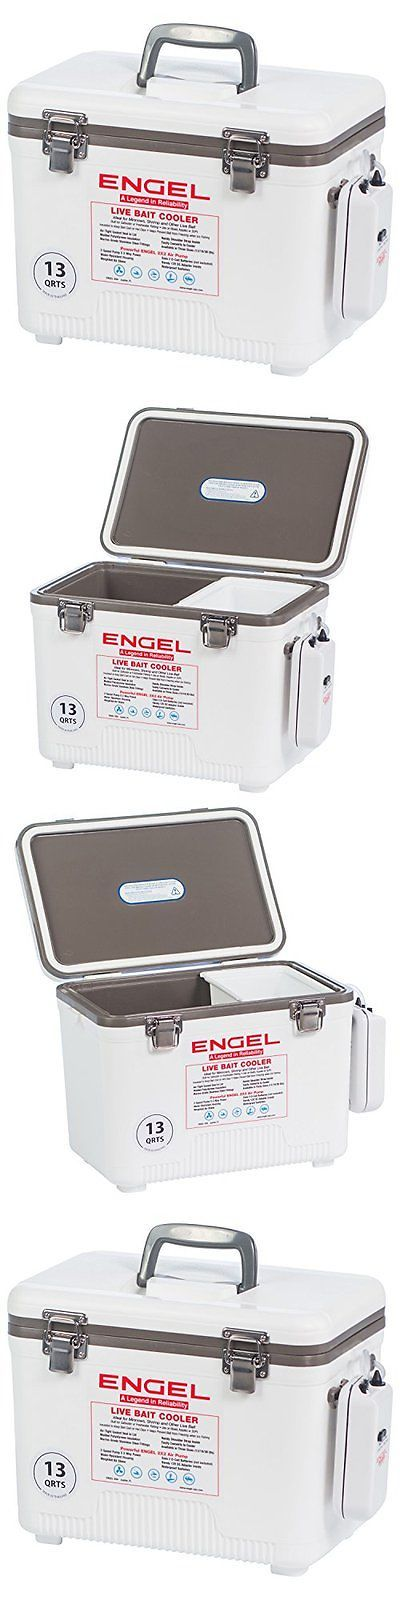 Bait Buckets 179986: 13 Quart Live Bait Cooler/Dry Box Air Pump White Sport Supply Fishing Accessory BUY IT NOW ONLY: $86.59